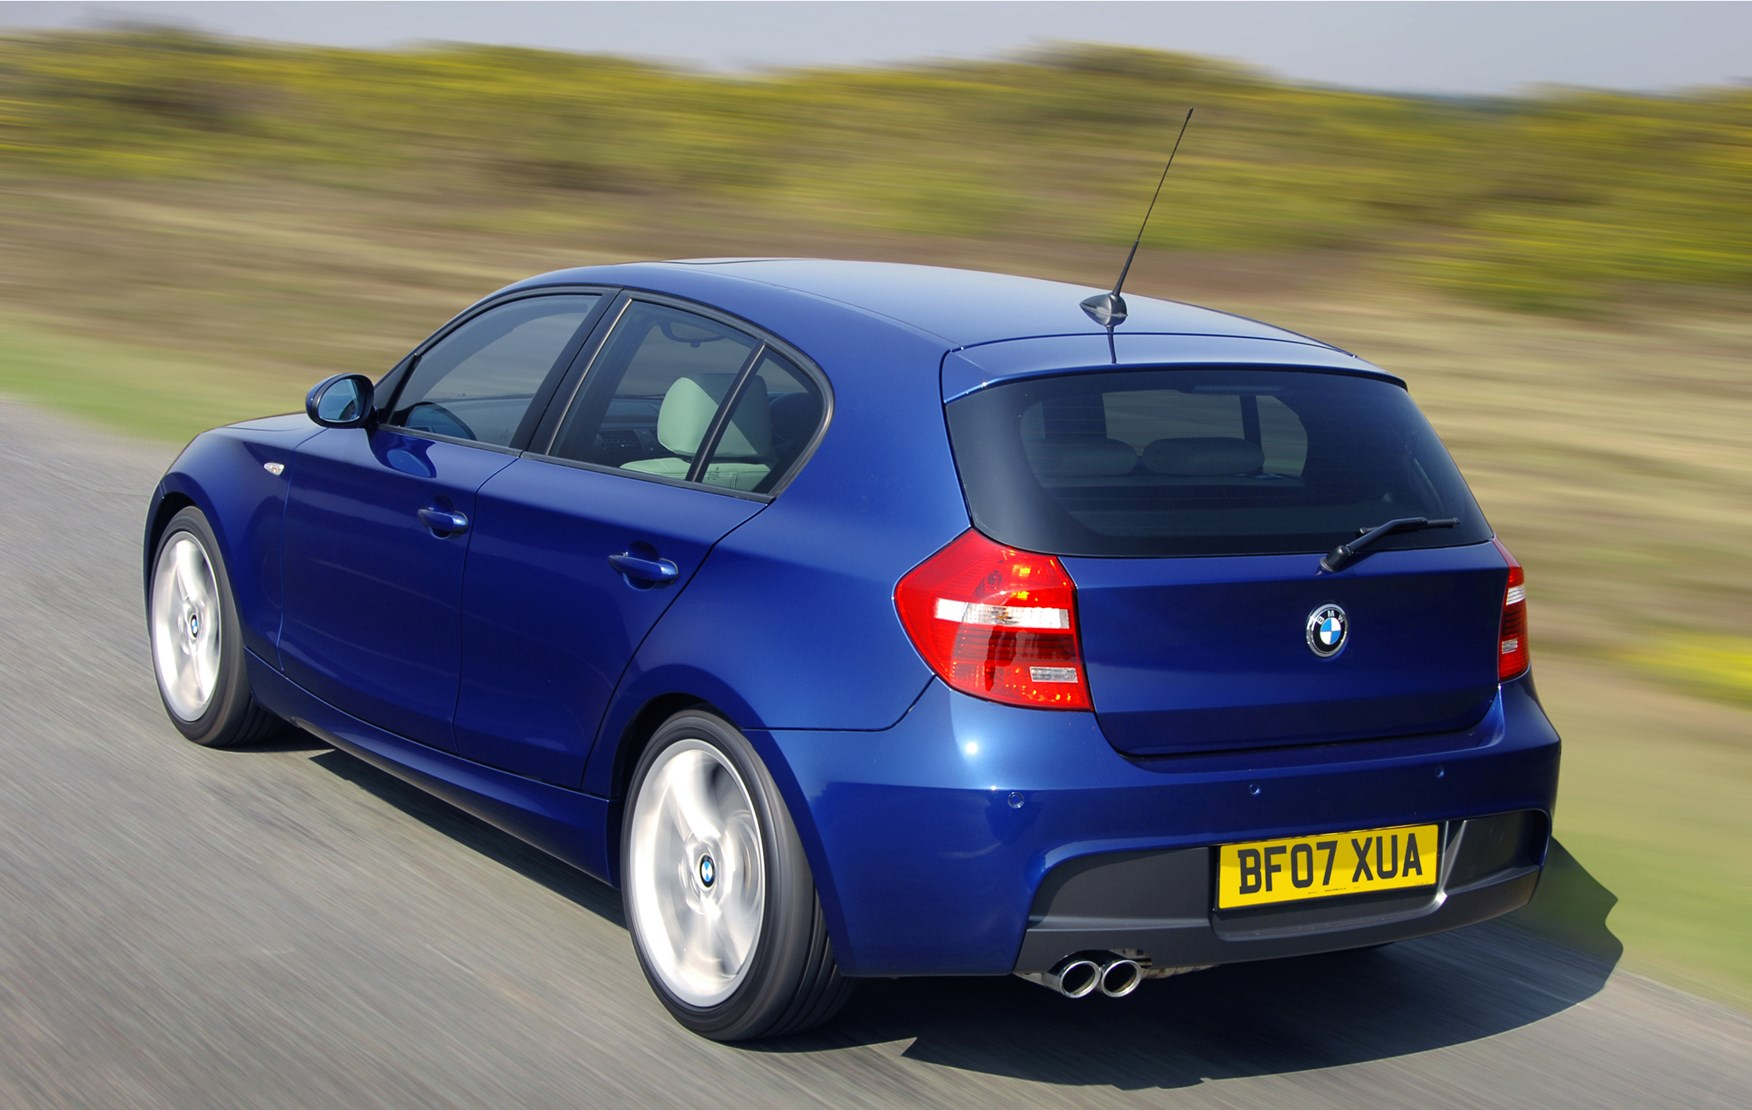 BMW 1 Series I (E81/E82/E87/E88) 2004 - 2007 Hatchback 5 door #1